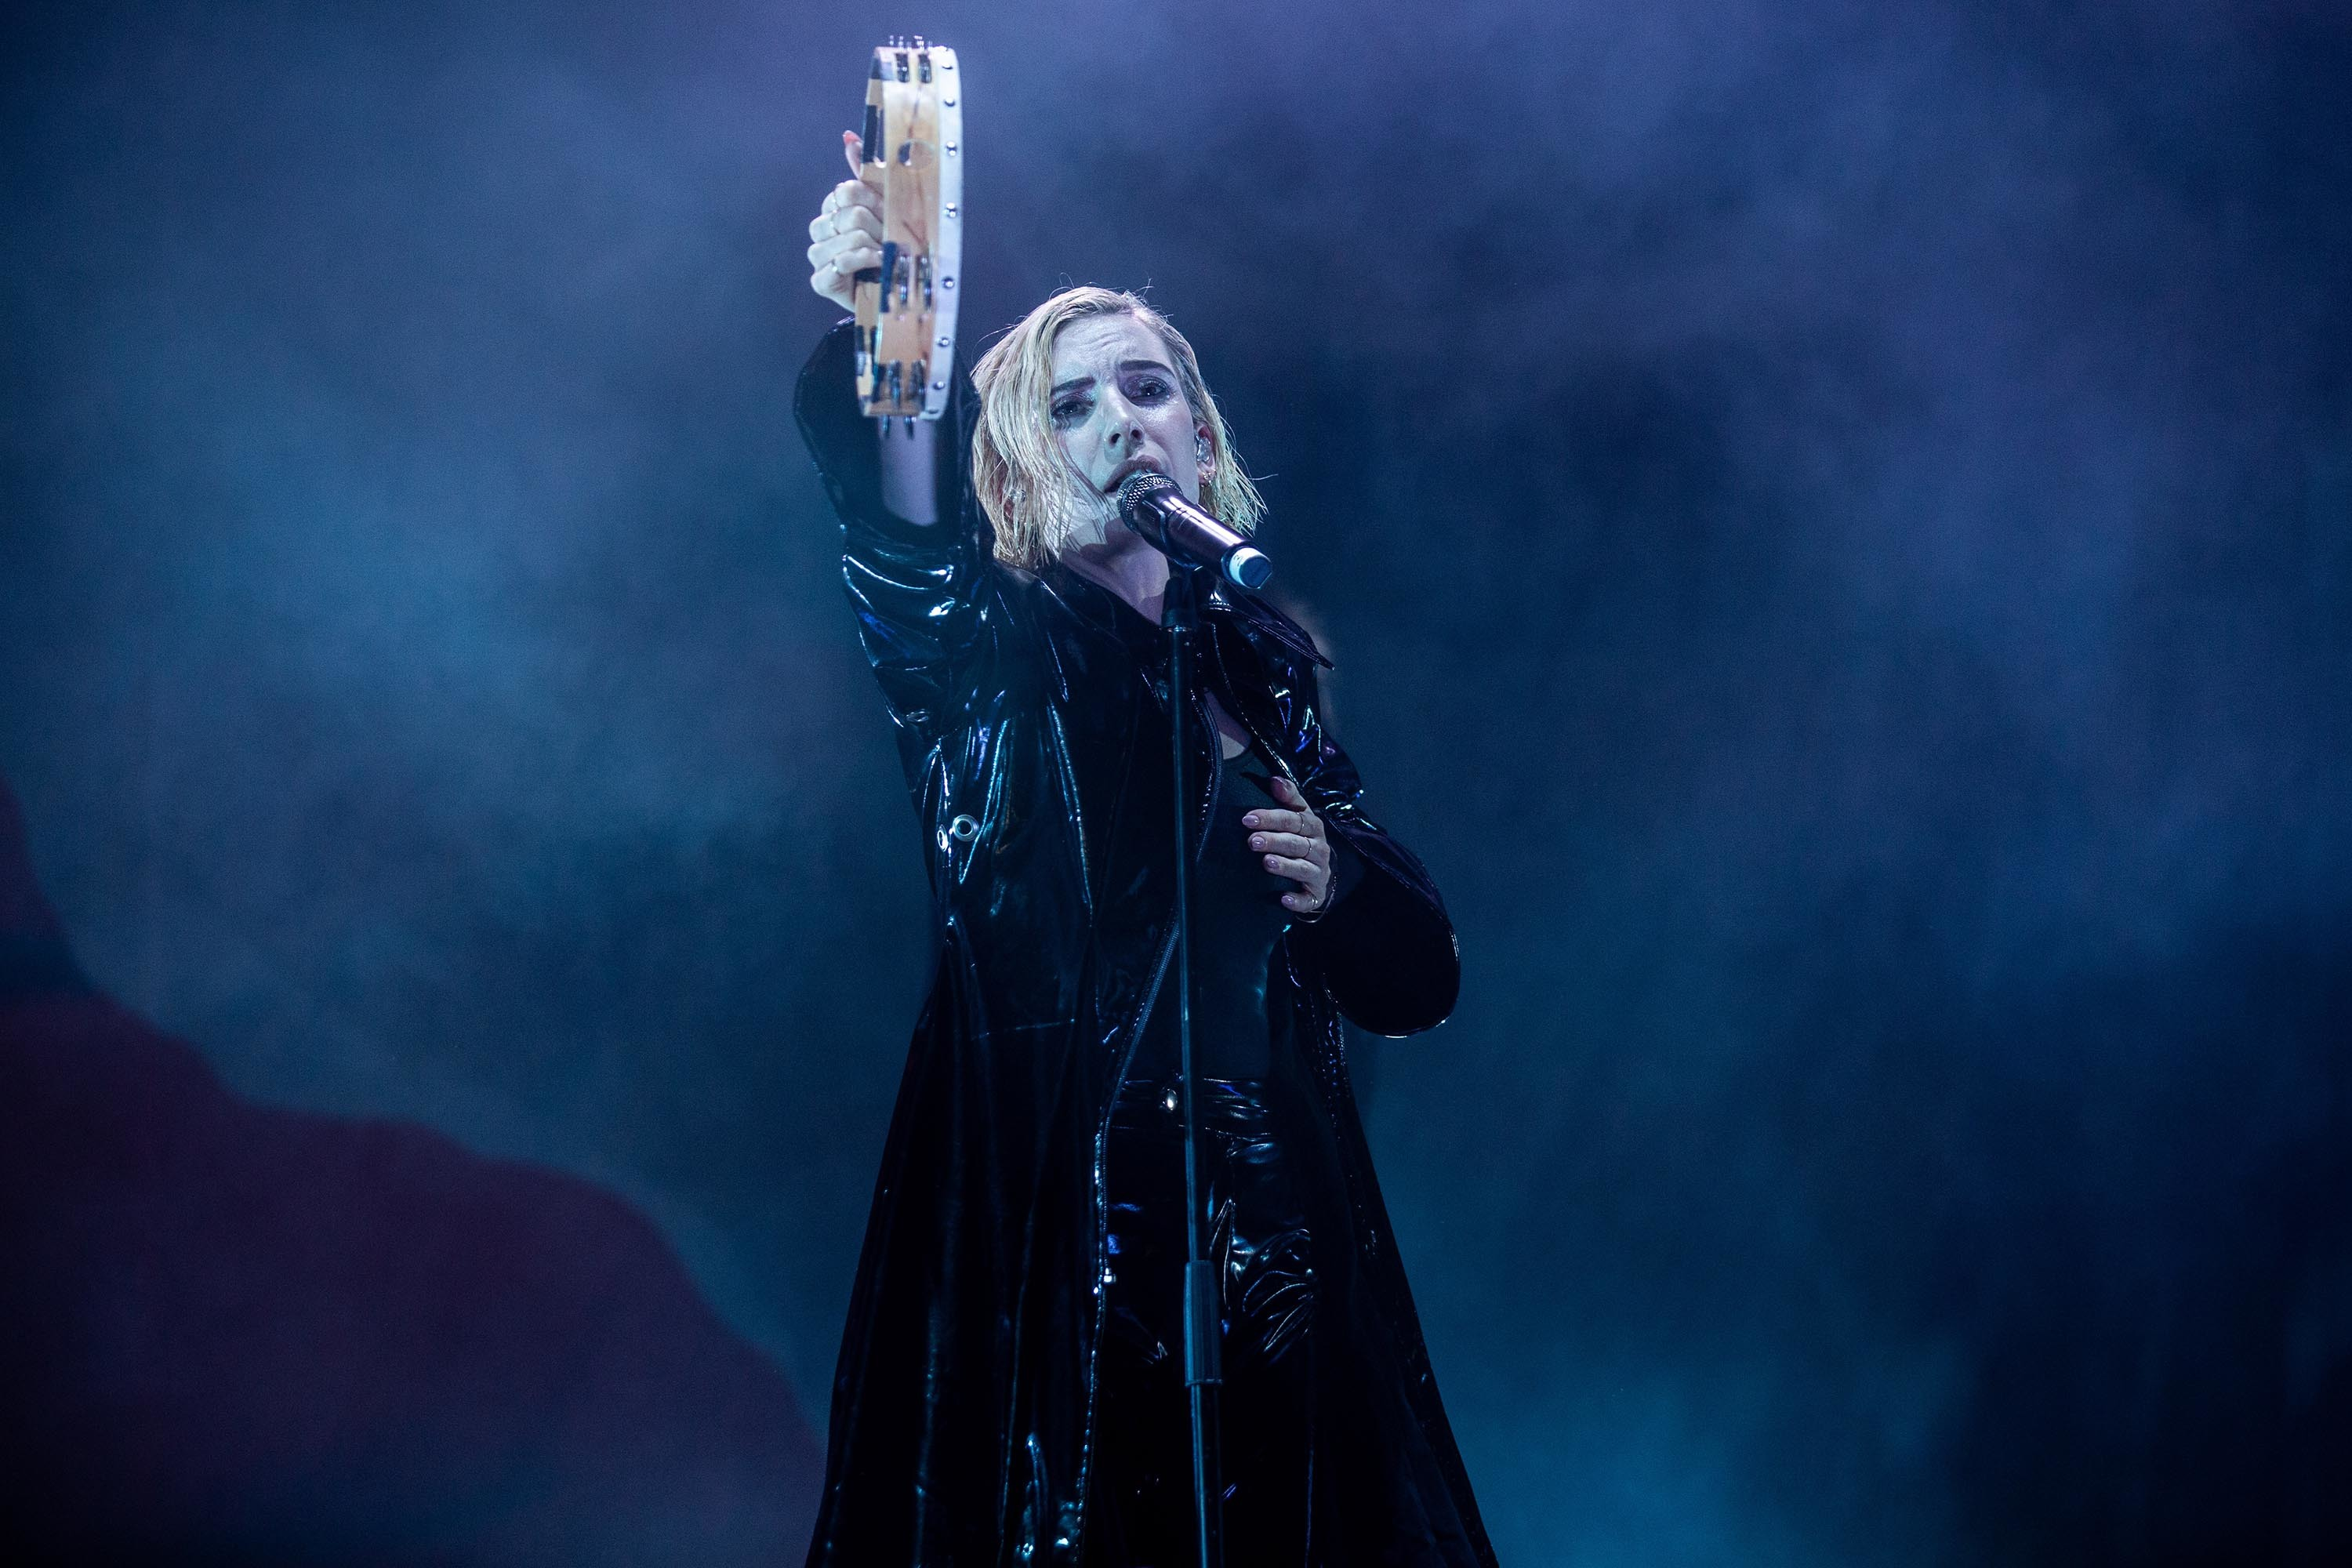 Lykke Li shares new remix, 'two nights part ii', featuring Skrillex & Ty Dolla $ign